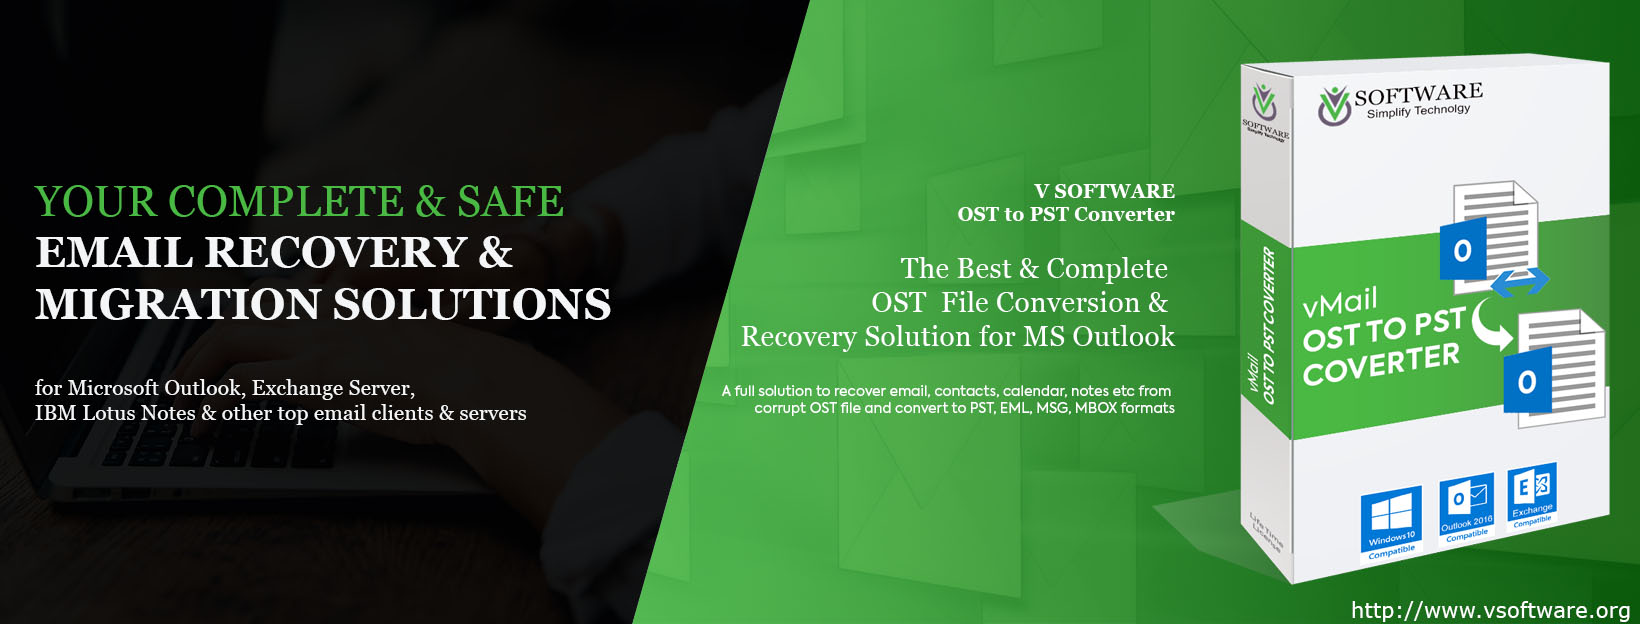 vMail OST to PST Converter | OST Recovery